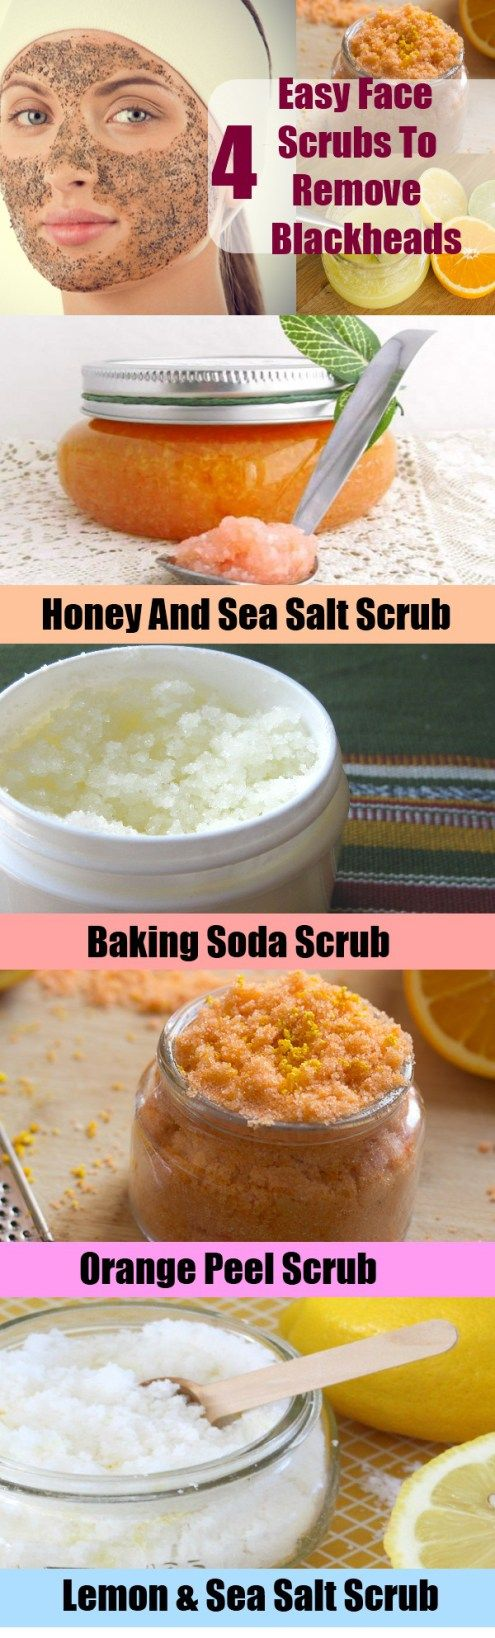 4 Easy Face Scrubs To Remove Blackheads